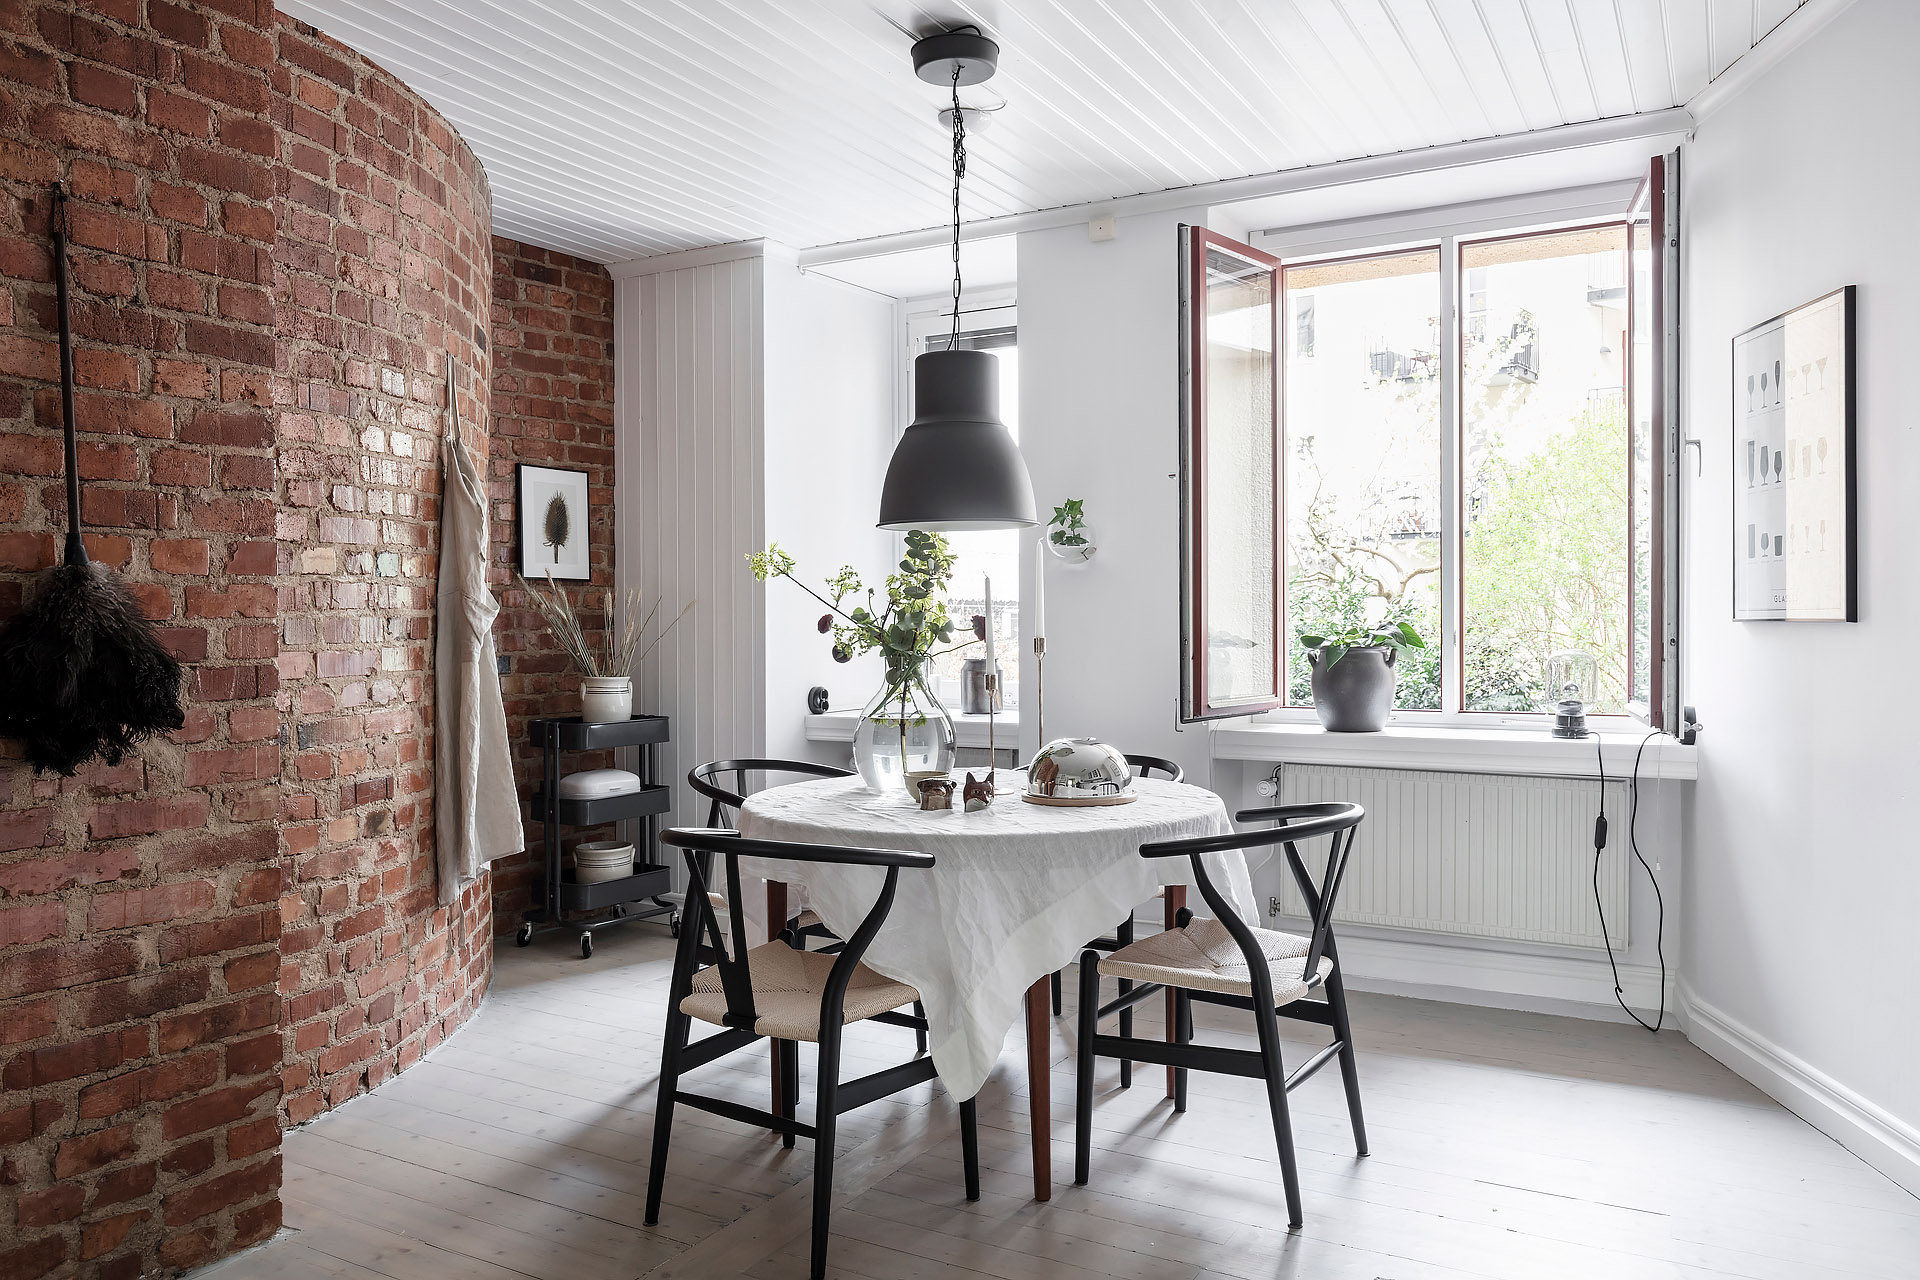 Light flooded kitchen with a brick wall - COCO LAPINE ...